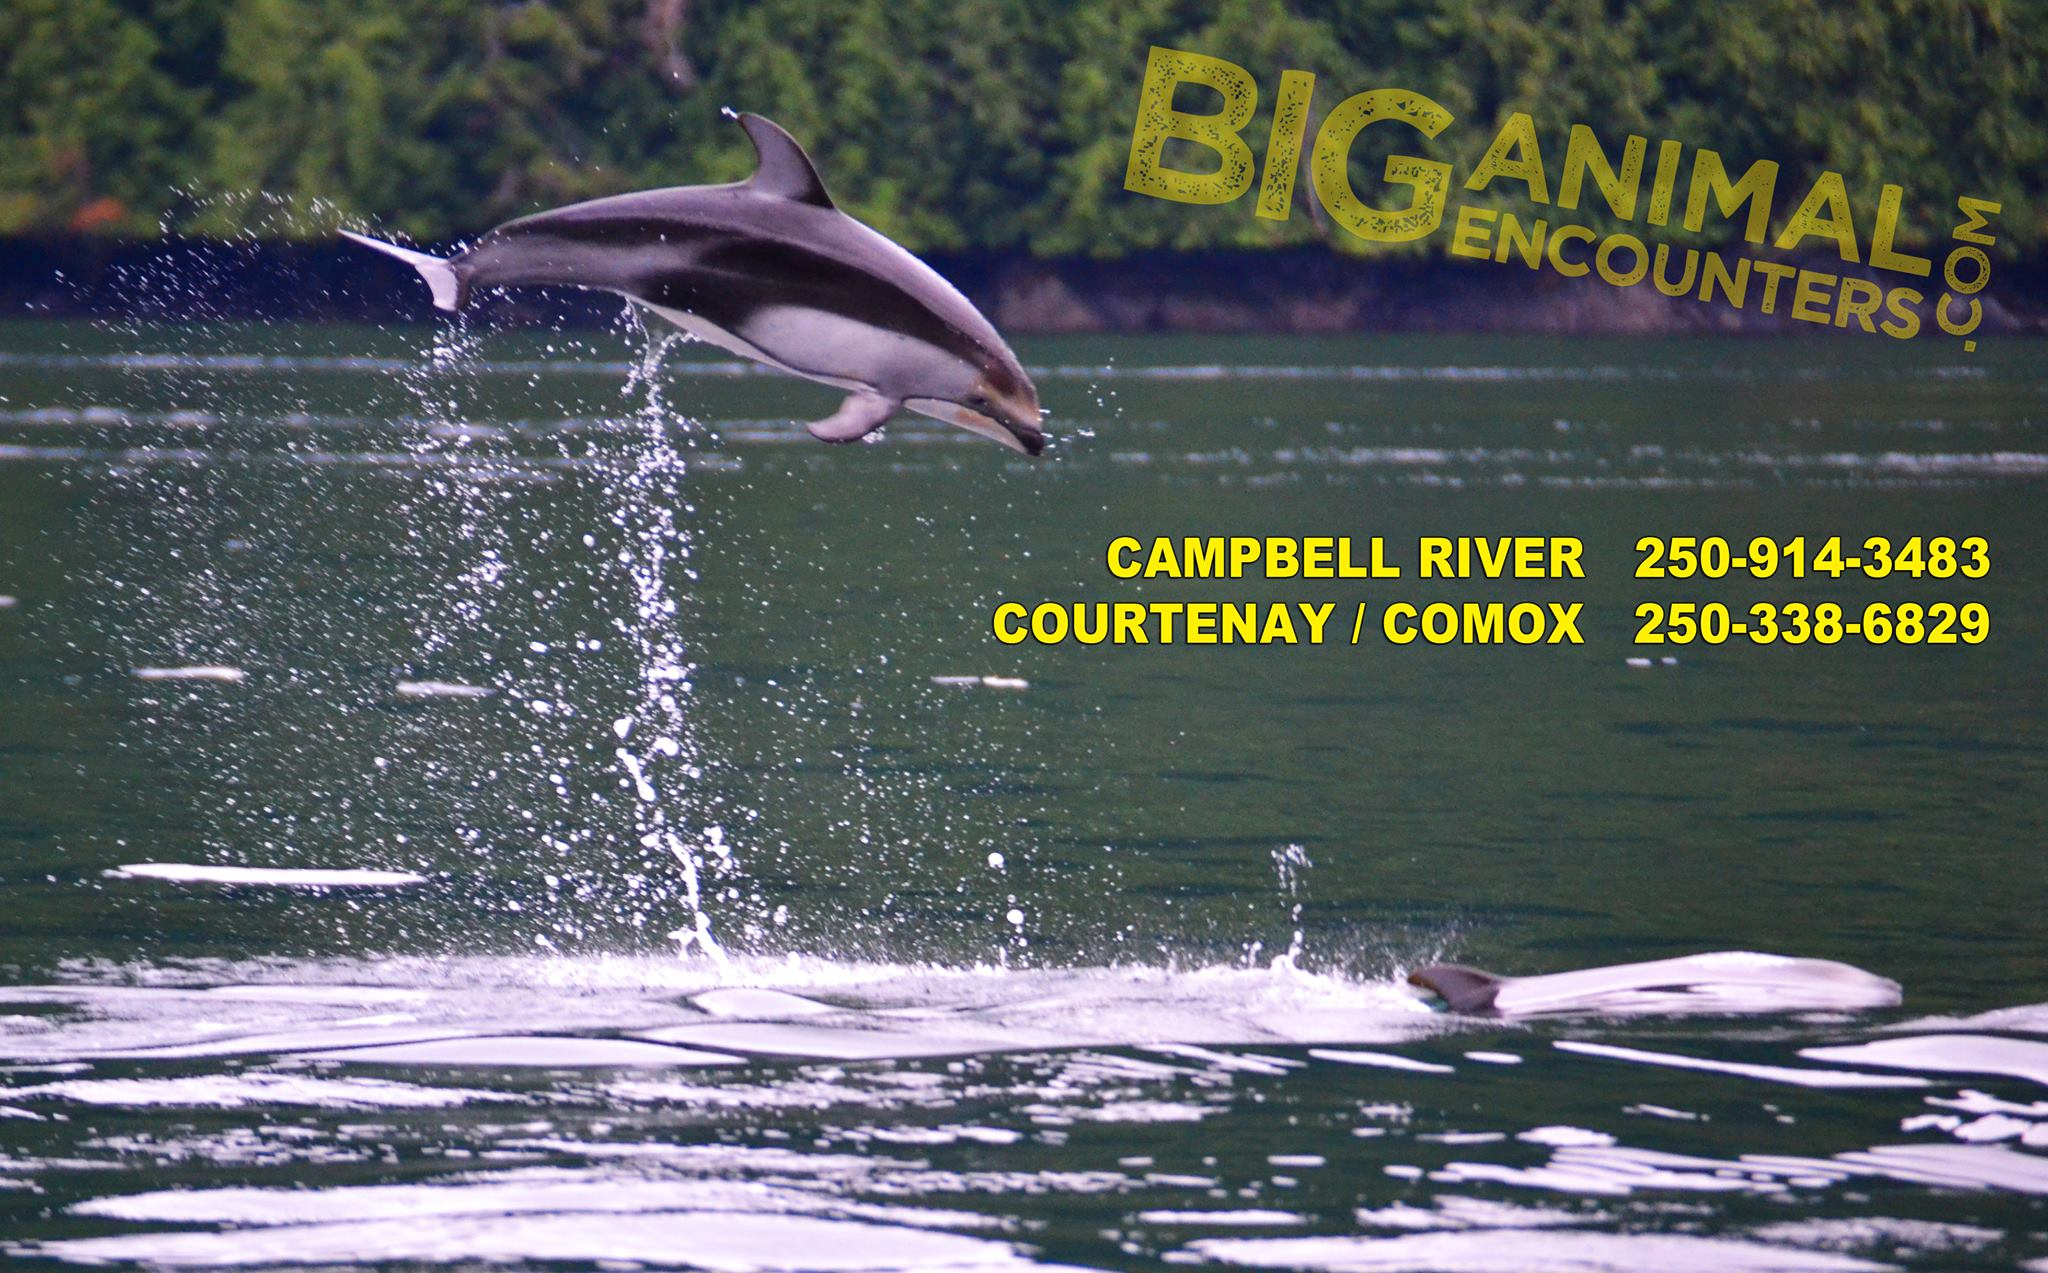 Big Animal Encounters by Pacific Pro Dive & Marine Adventures